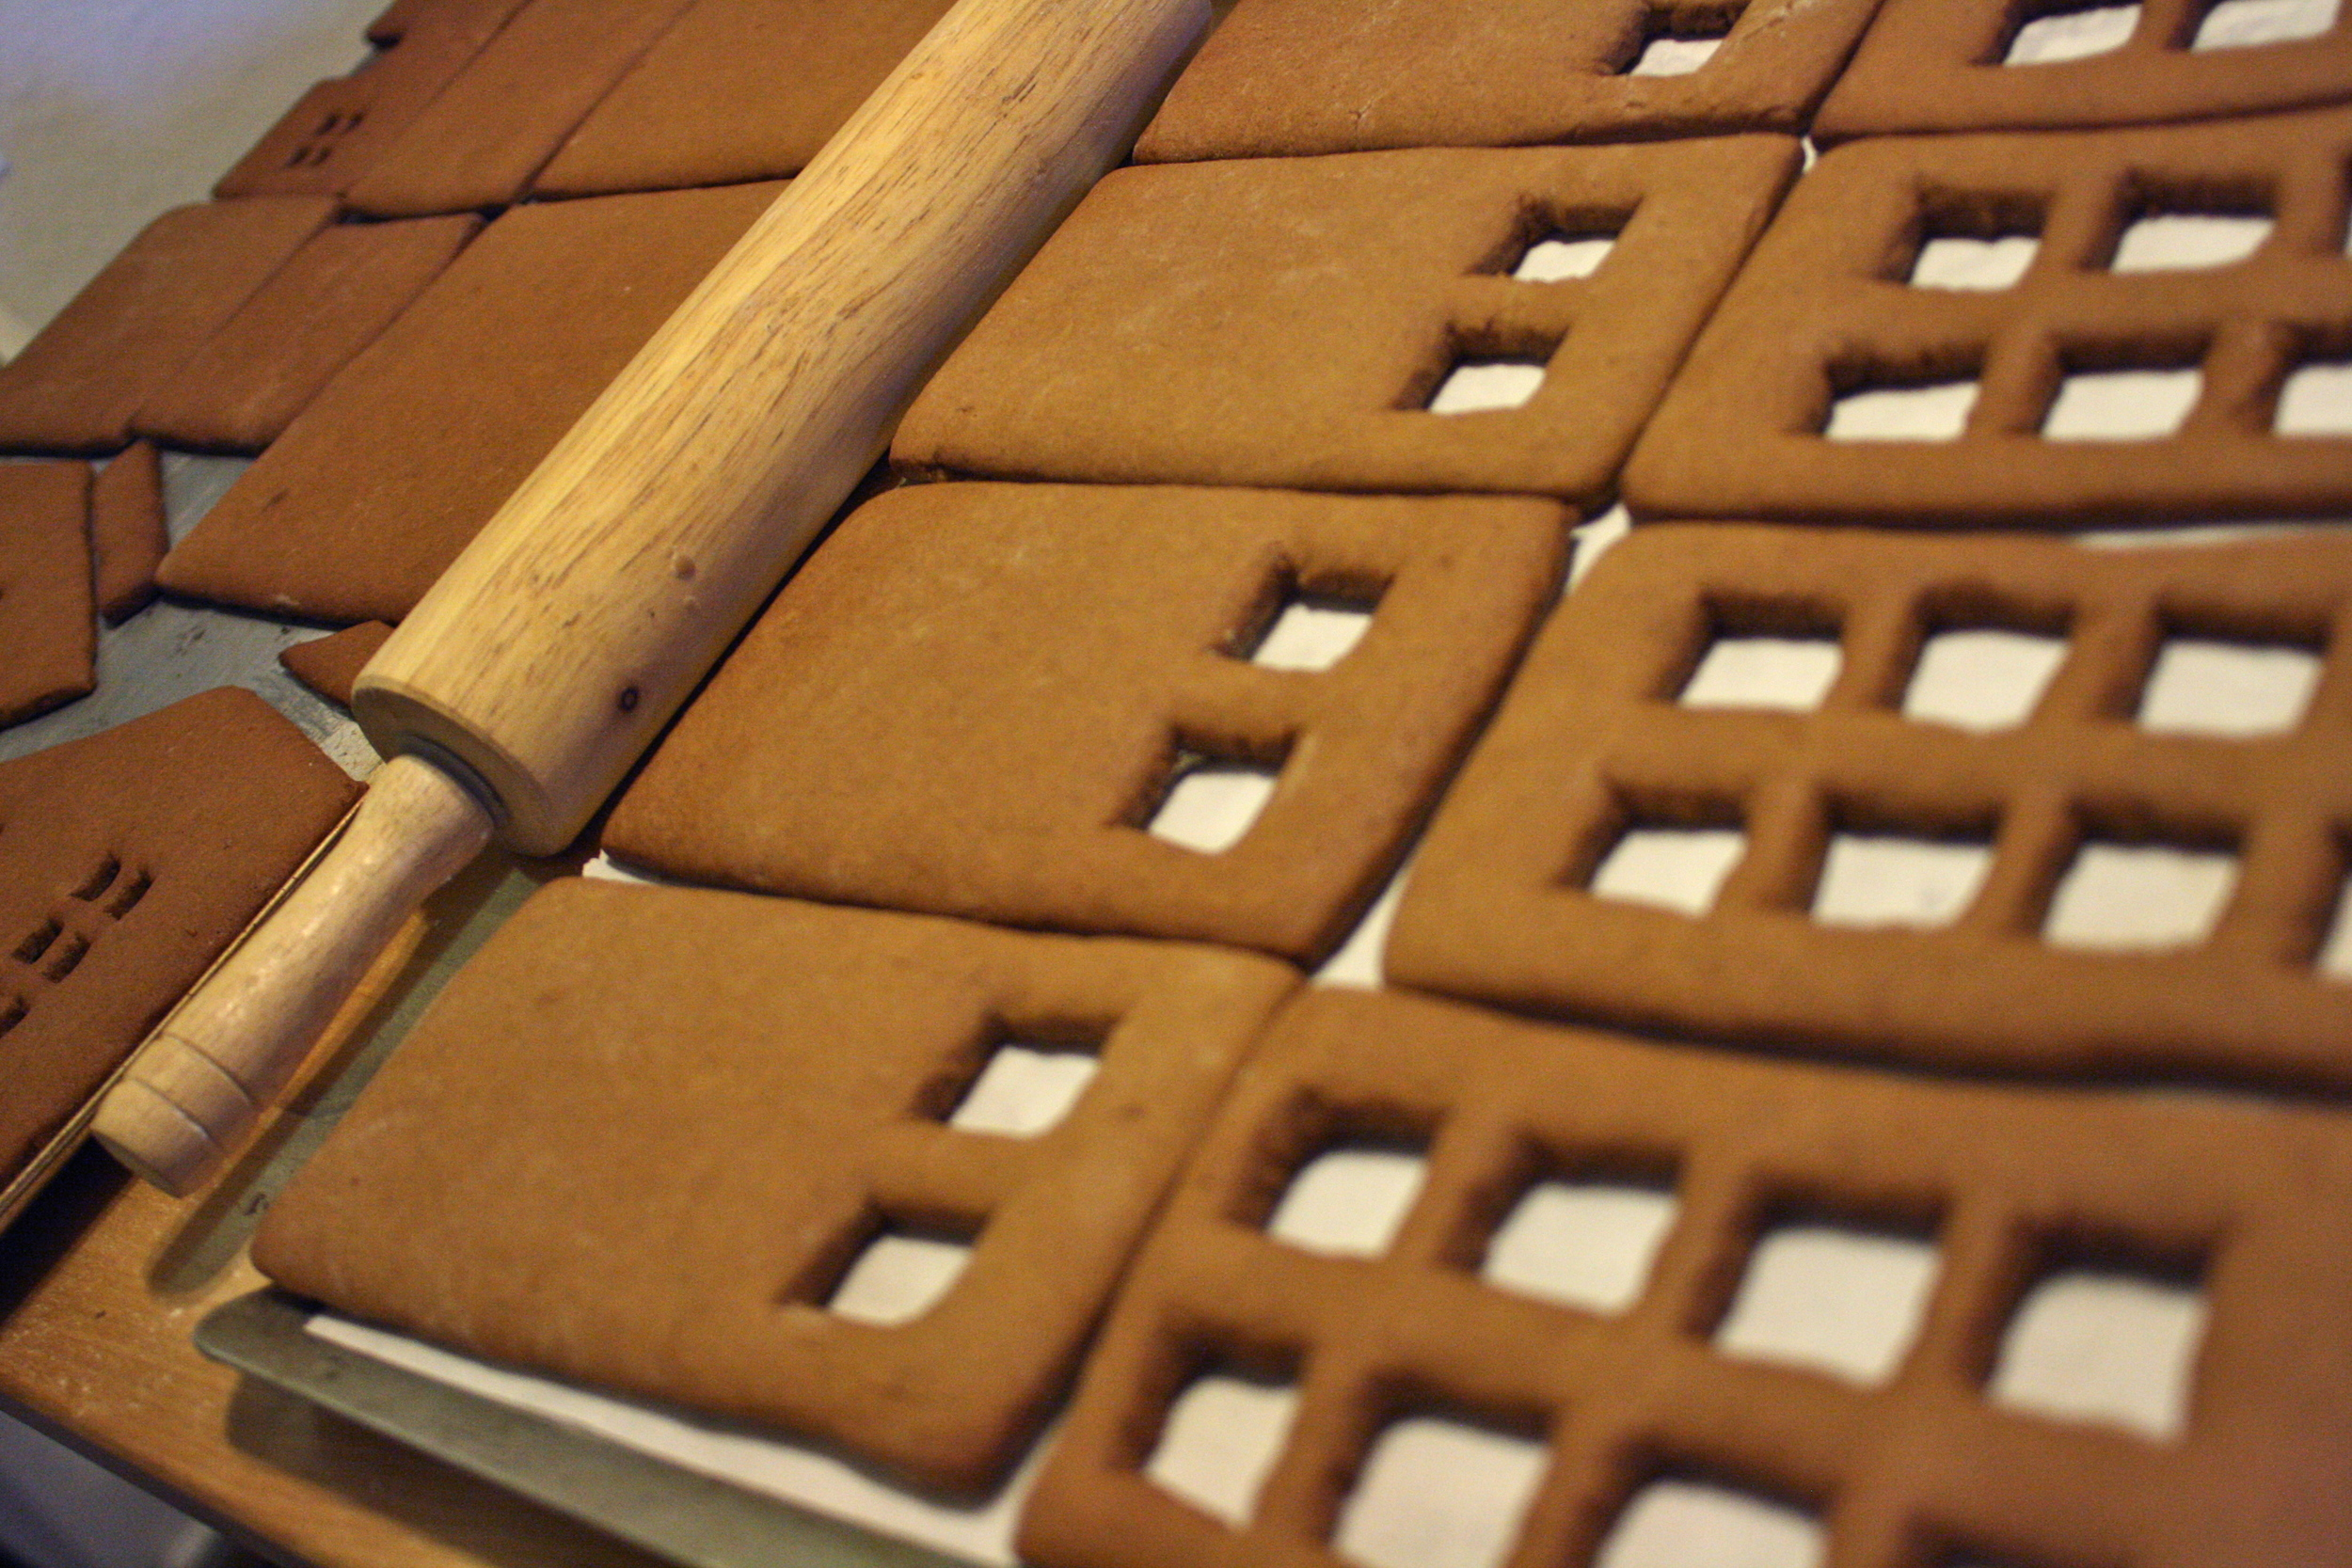 tardis gingerbread house template  How To: Build Your Own Gingerbread Tardis — Sugared Nerd